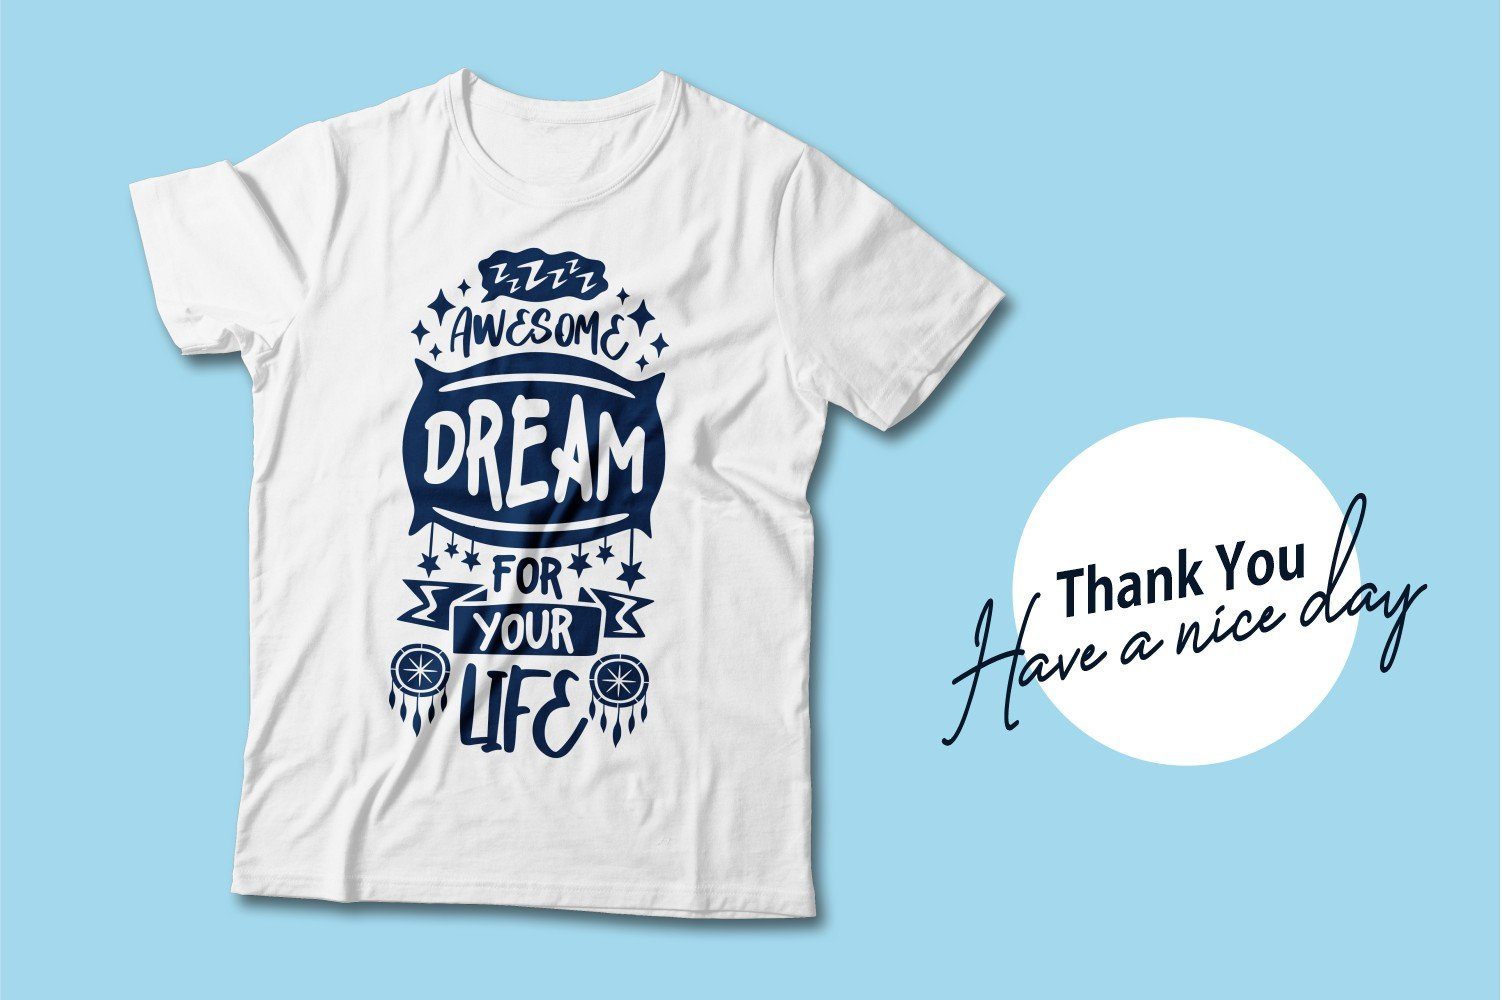 White T-shirt with blue lettering.